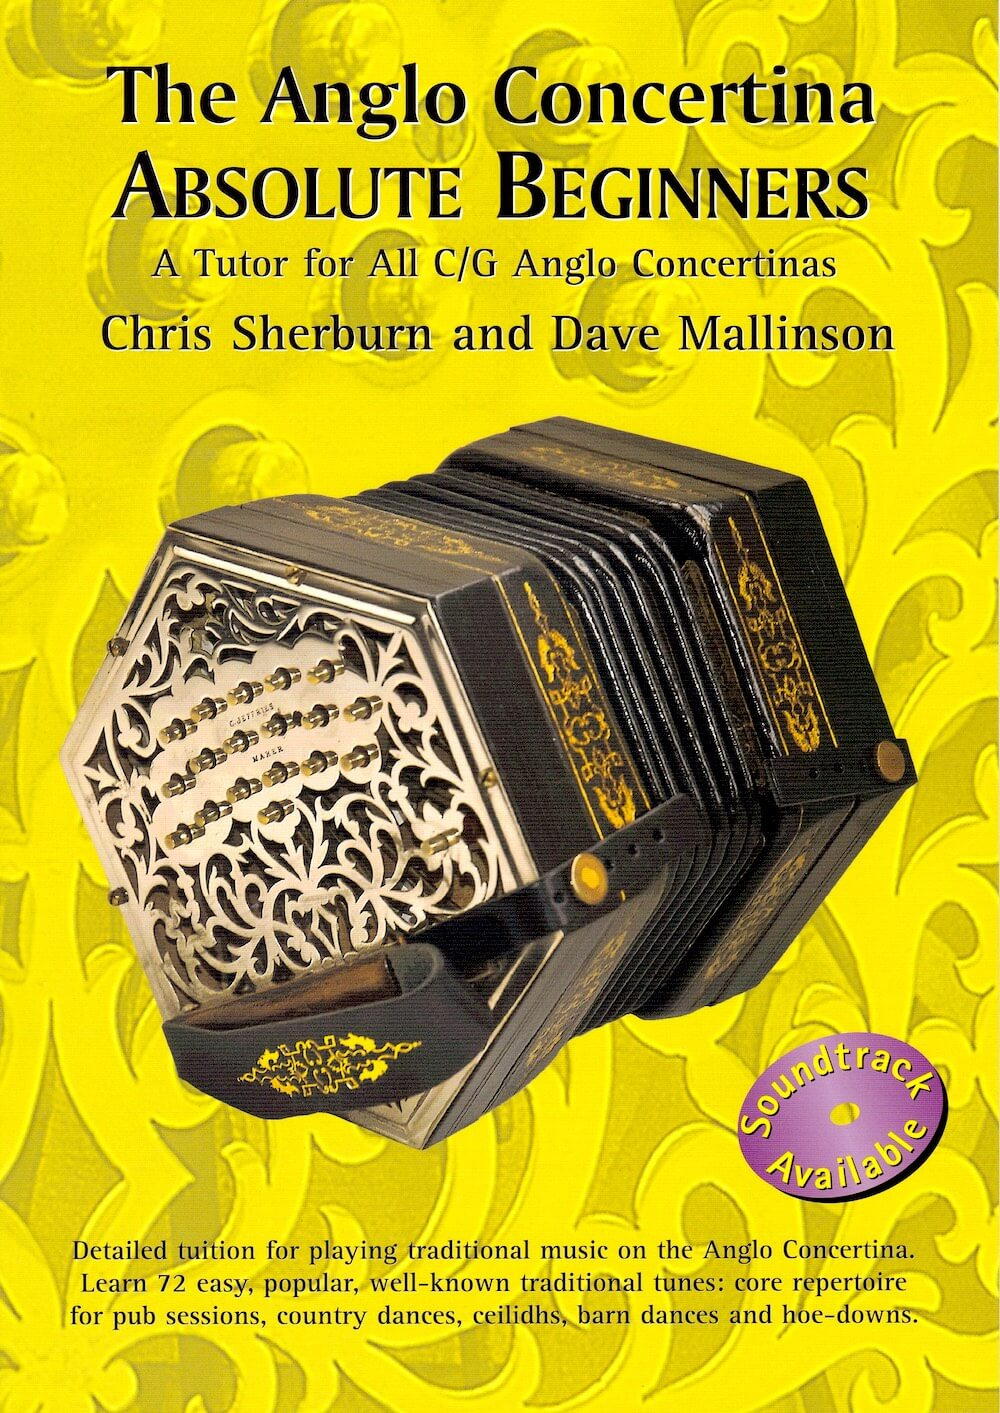 The Anglo Concertina Absolute Beginners - CD1枚付(英文)